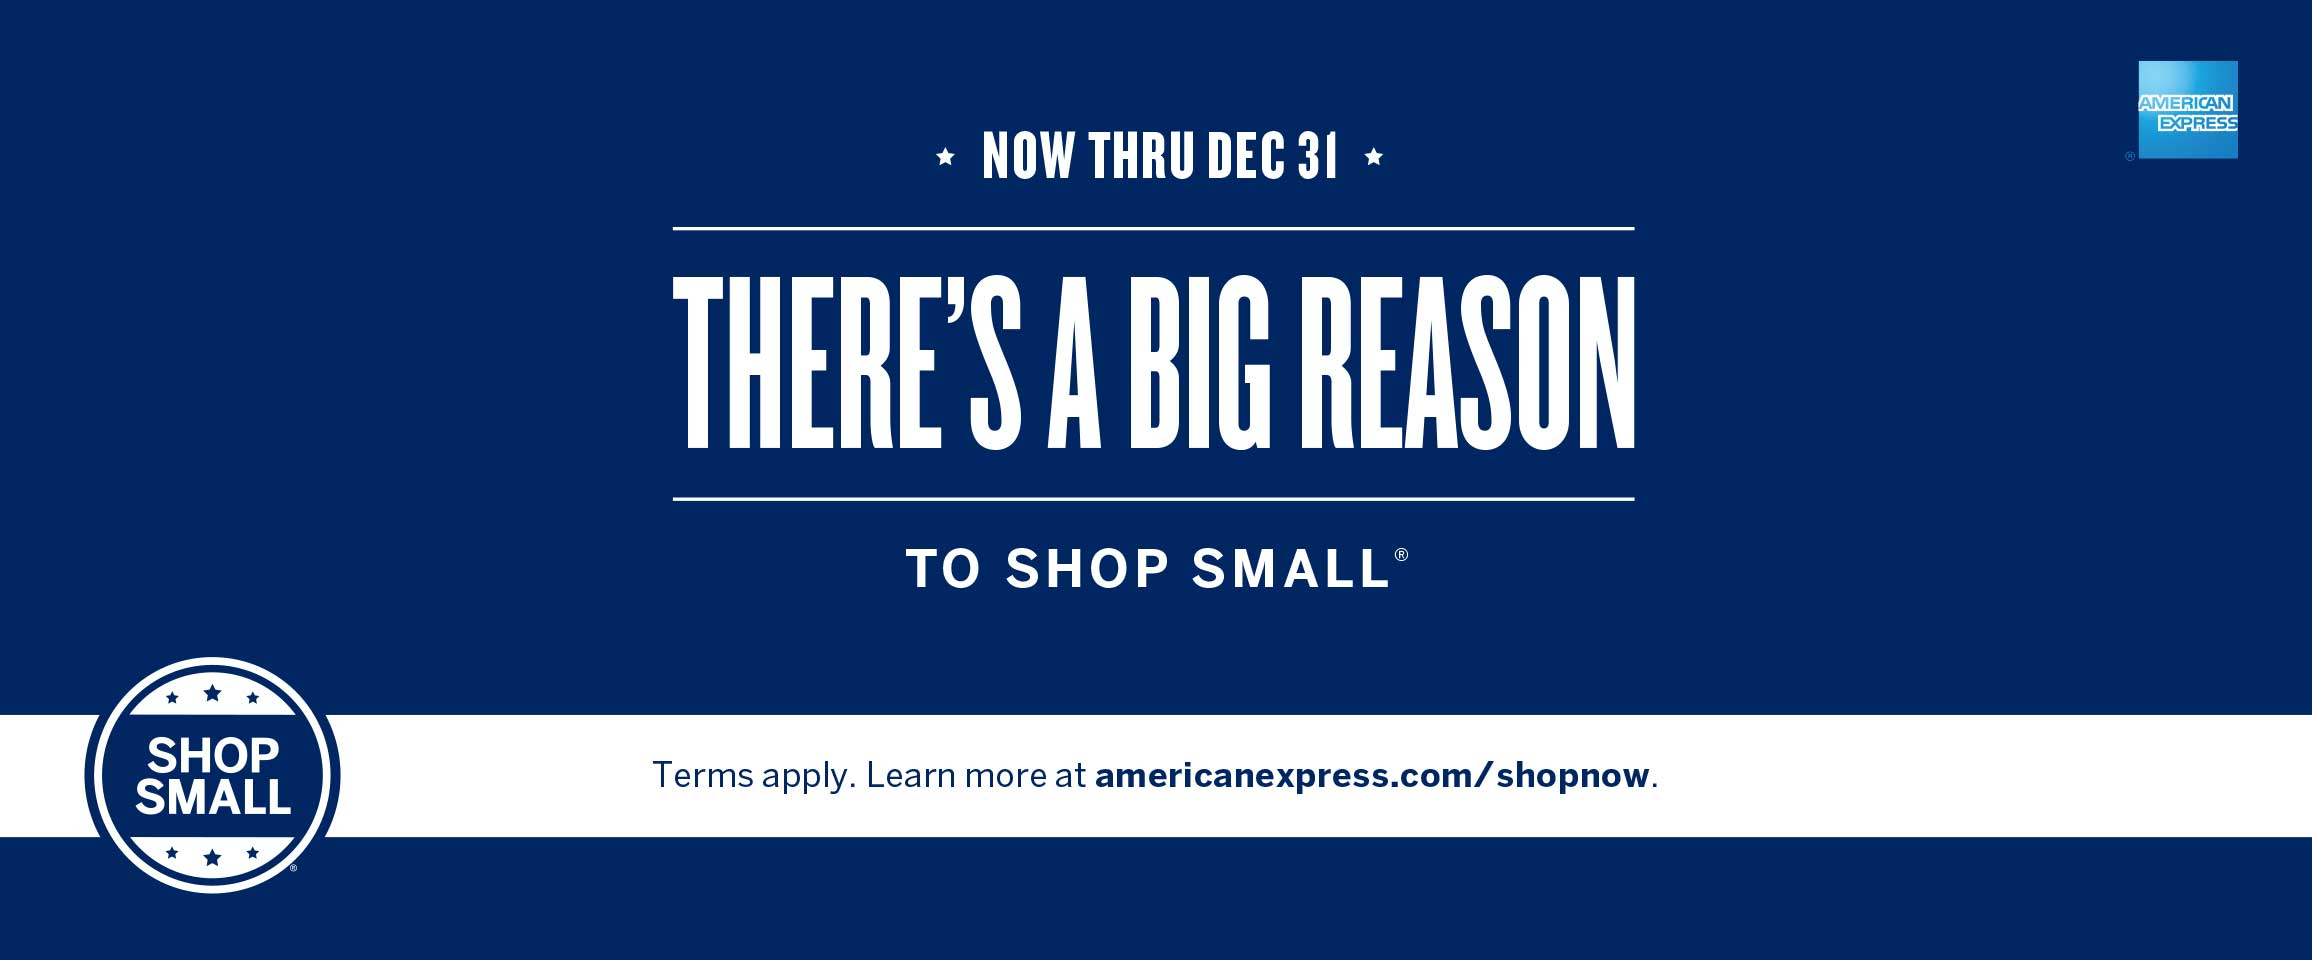 American Express is Giving Small Business Owners Free Marketing